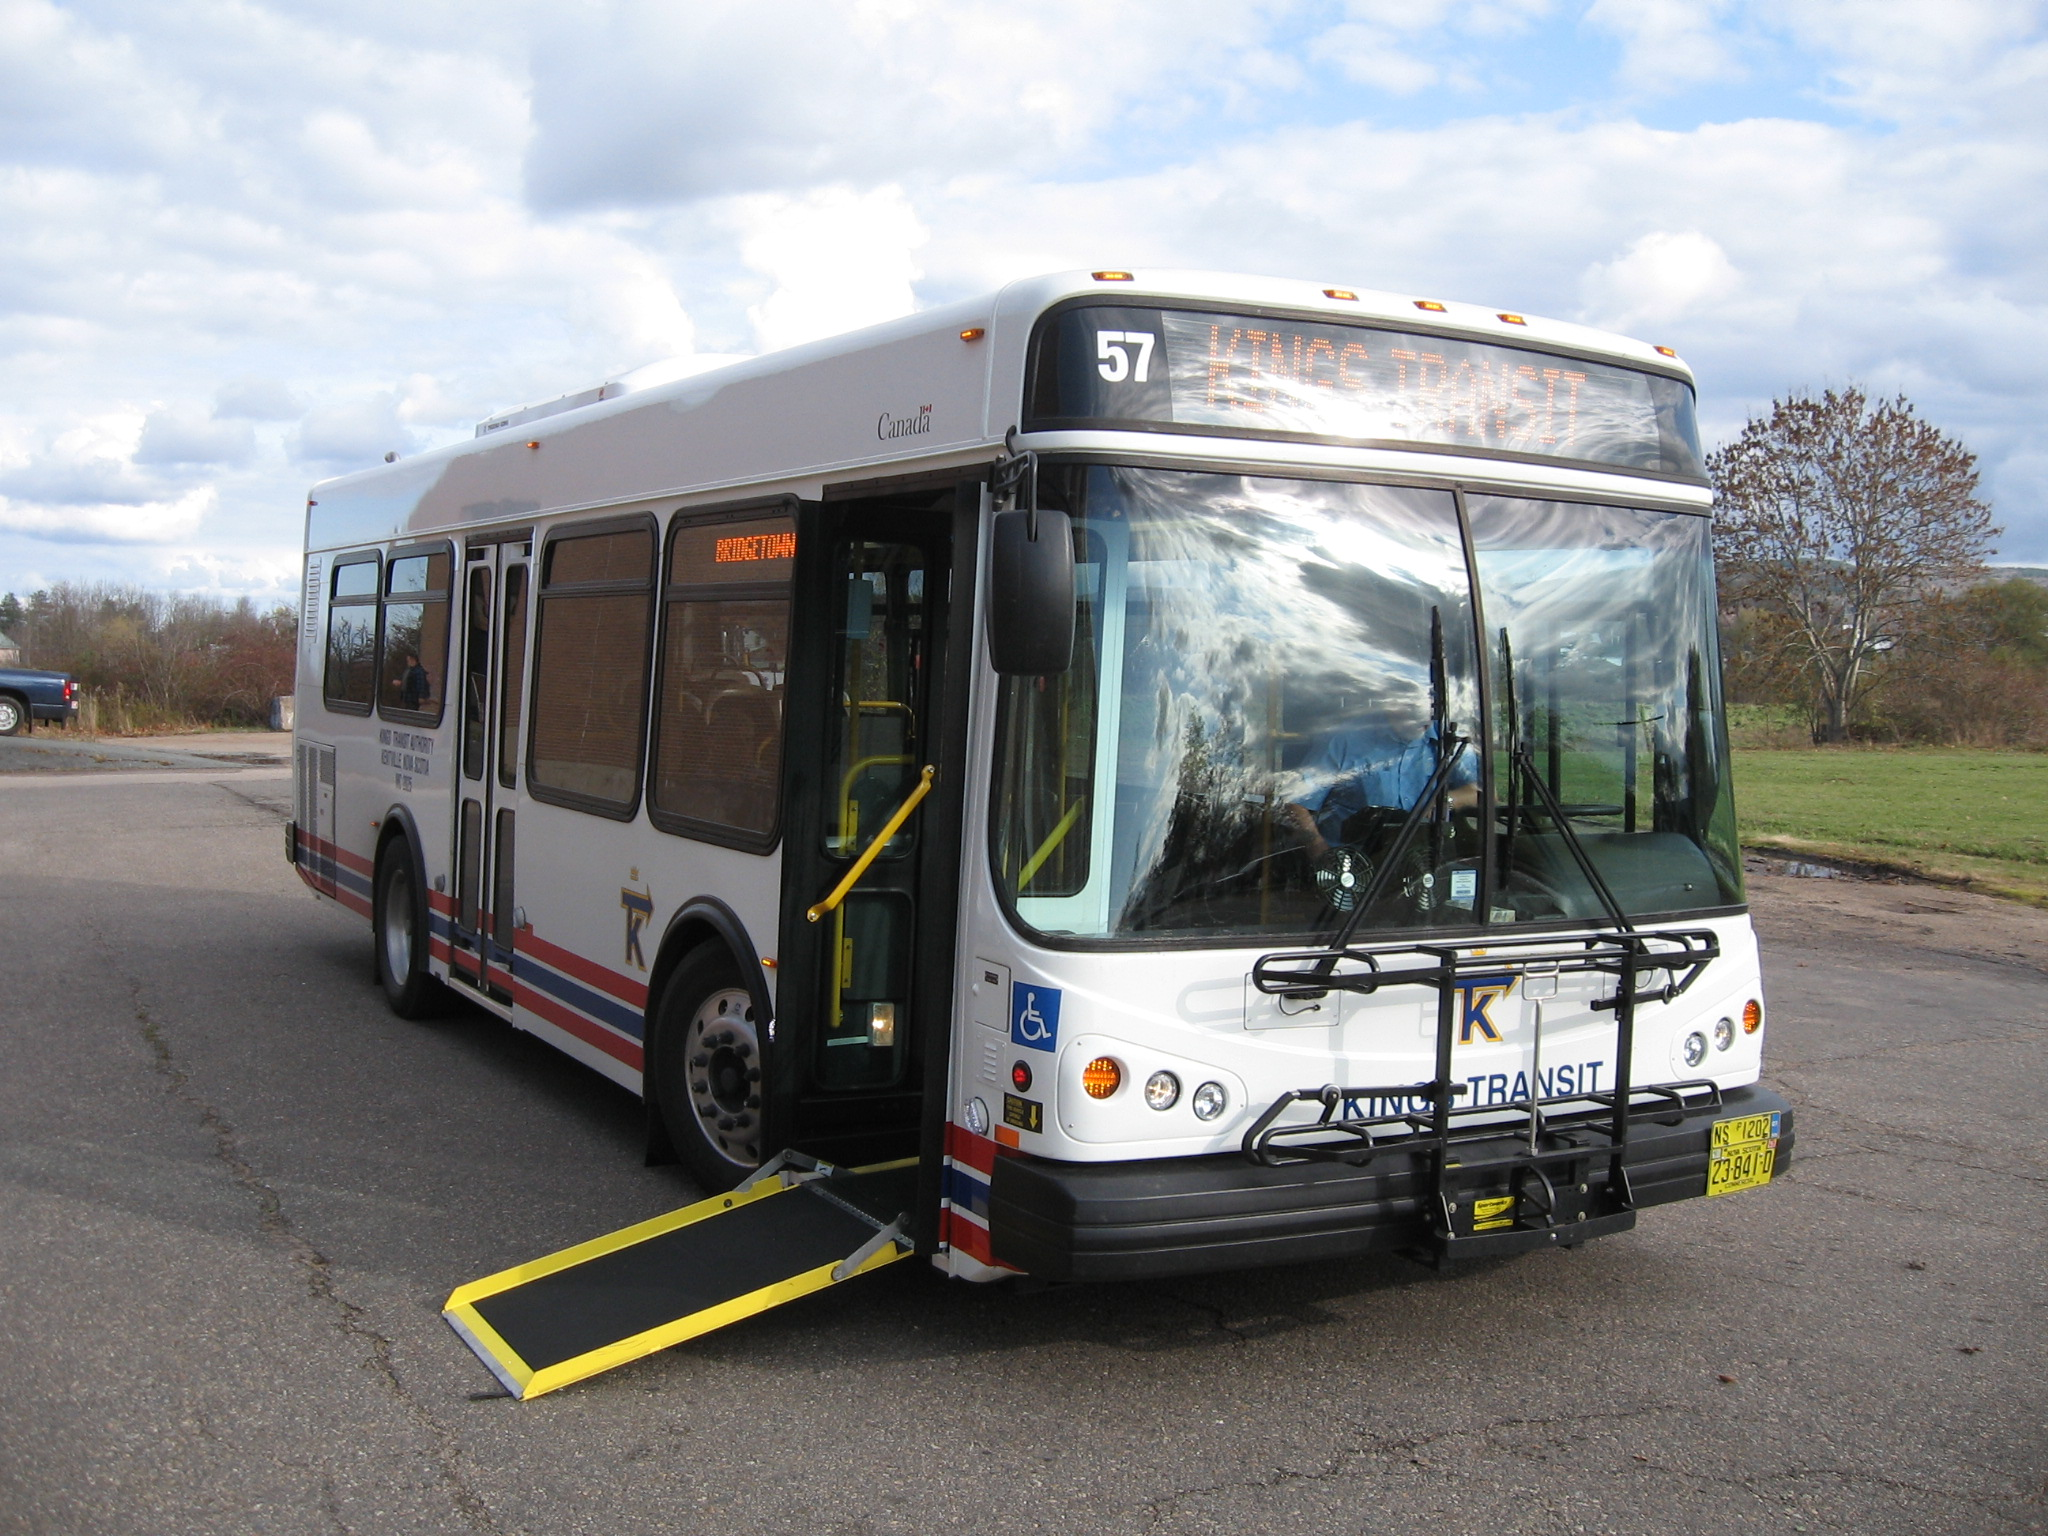 Fully accessible Kings Transit buses